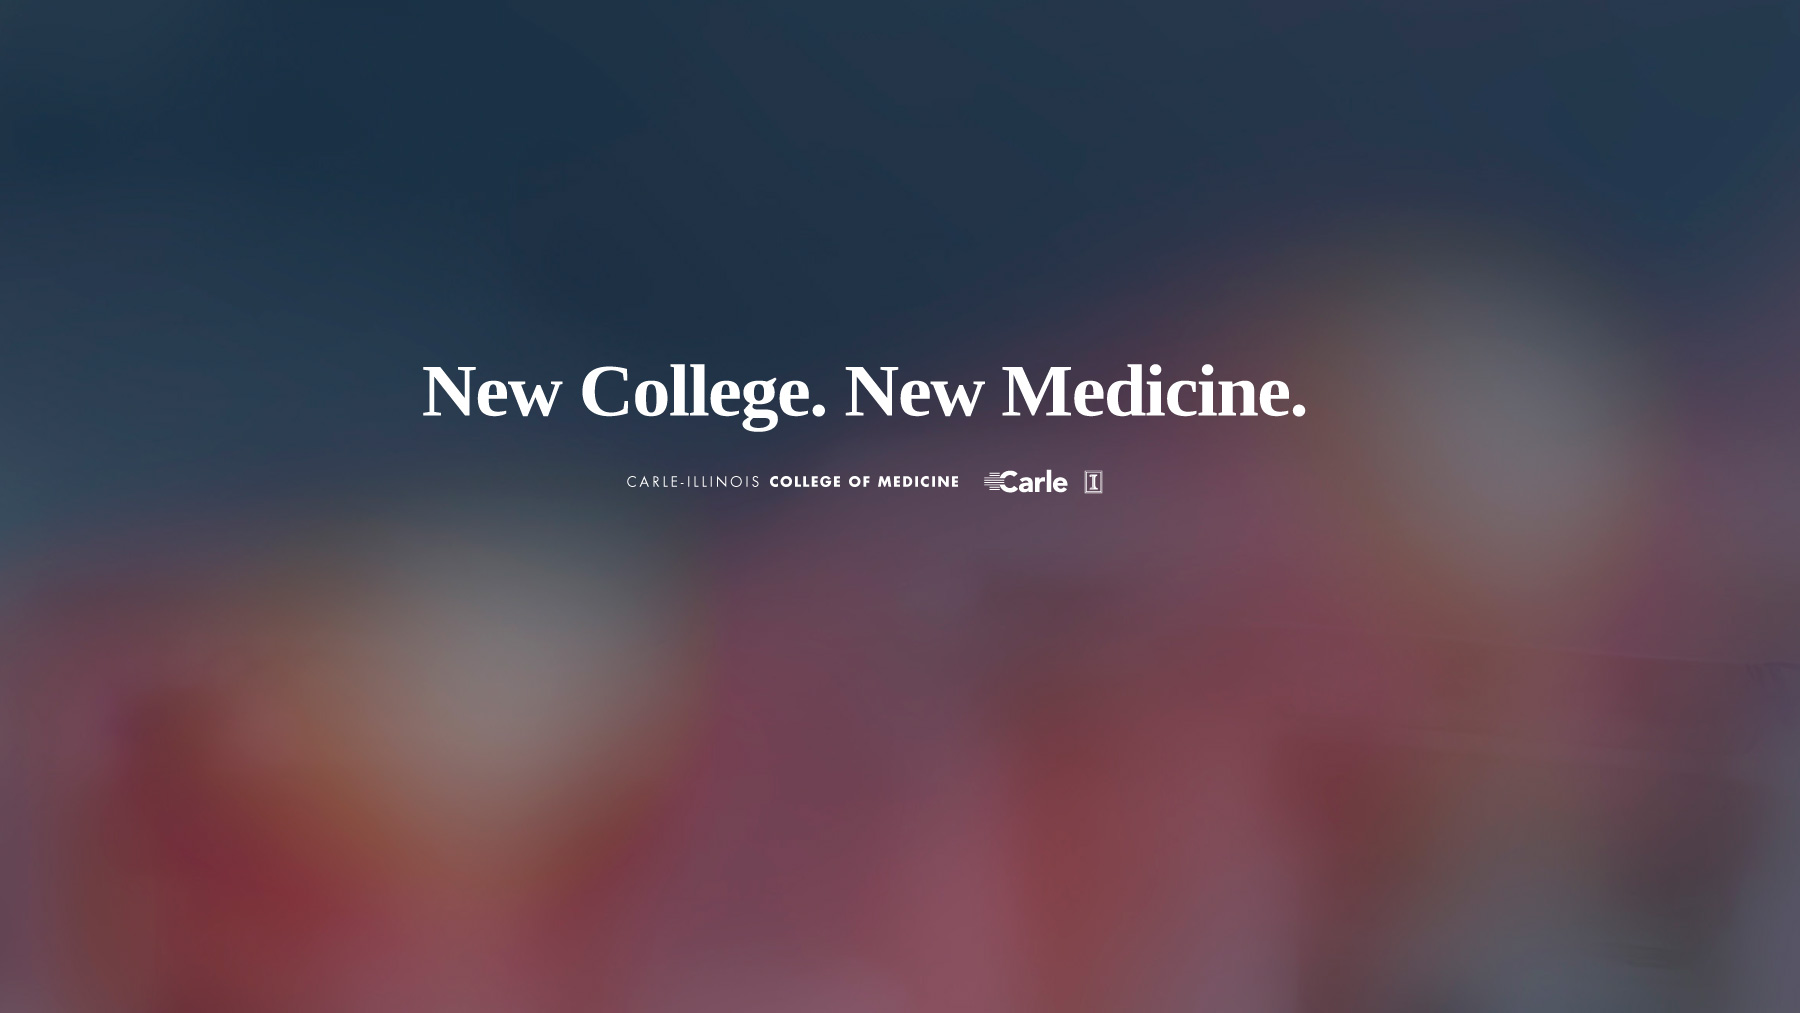 banner announcing new college of medicine